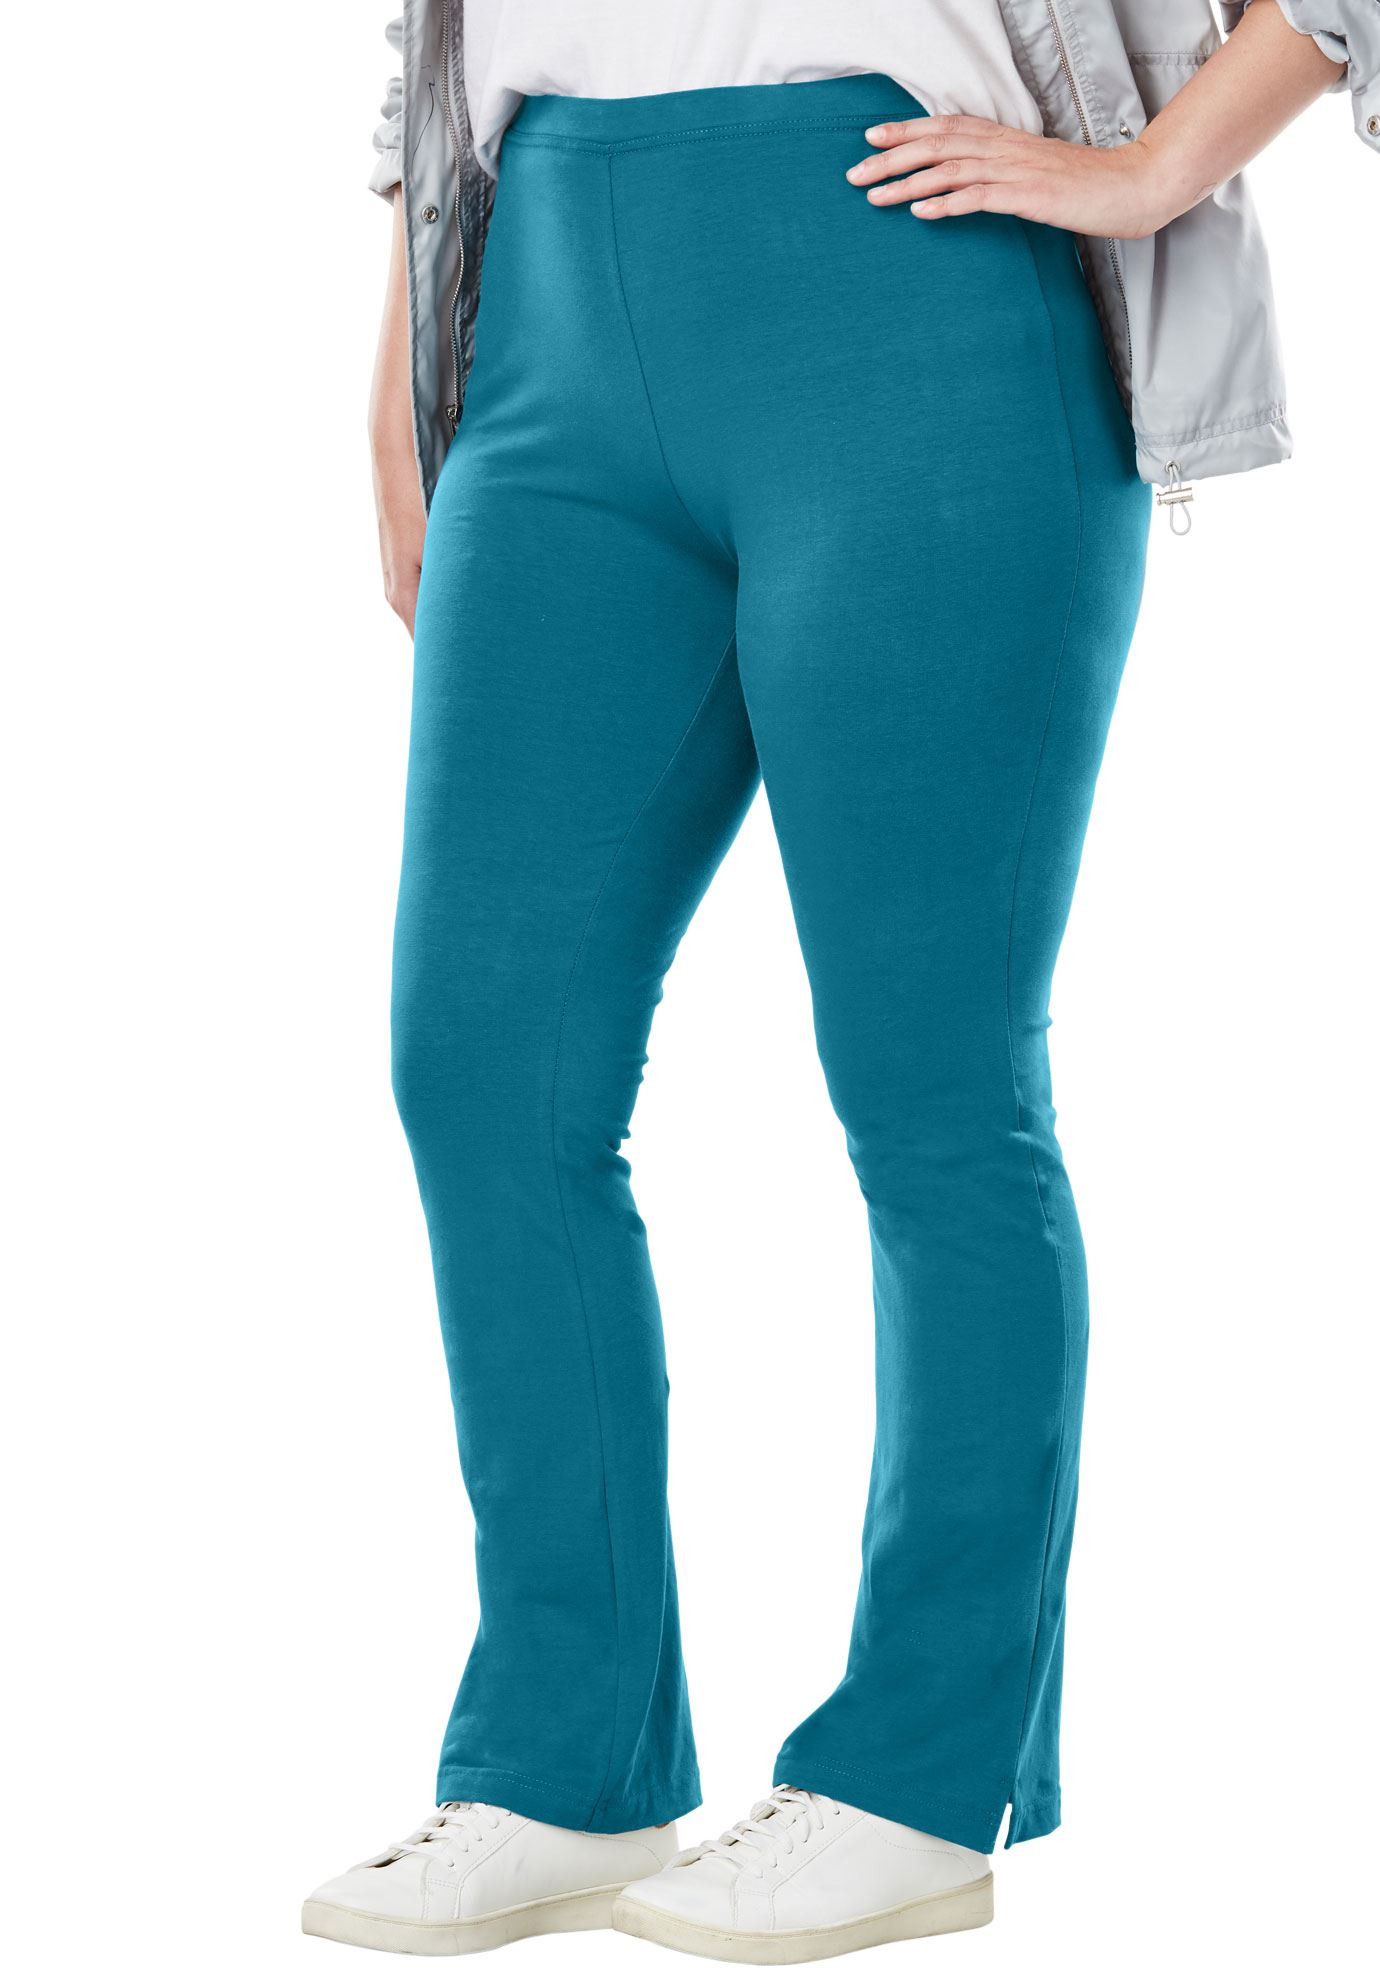 Plus Size Tall Stretch Cotton Bootcut Yoga Pant